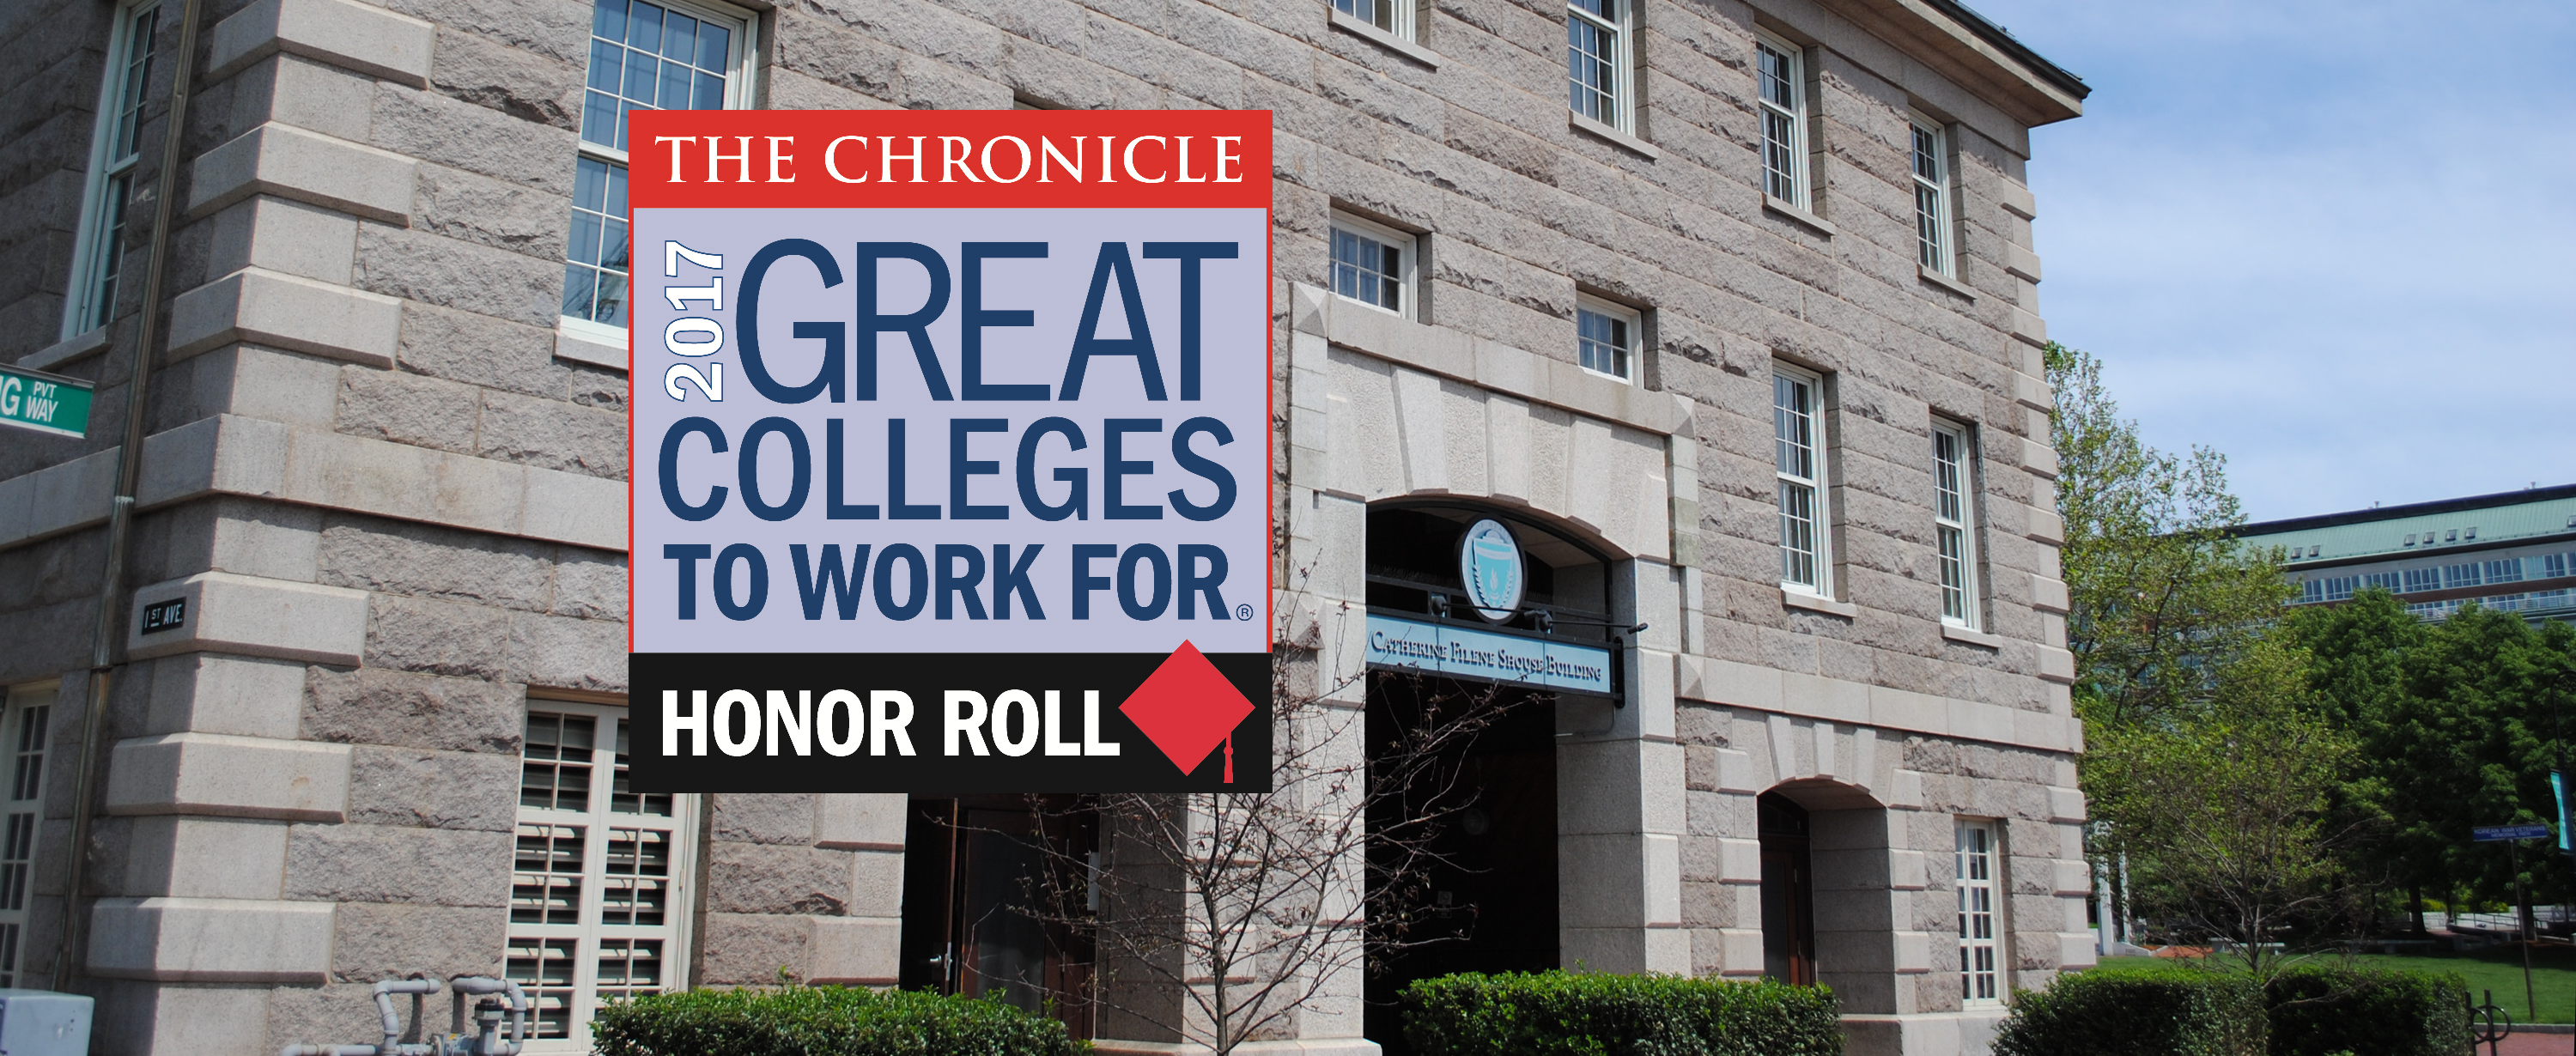 2017 Great Colleges to Work For Honor Roll